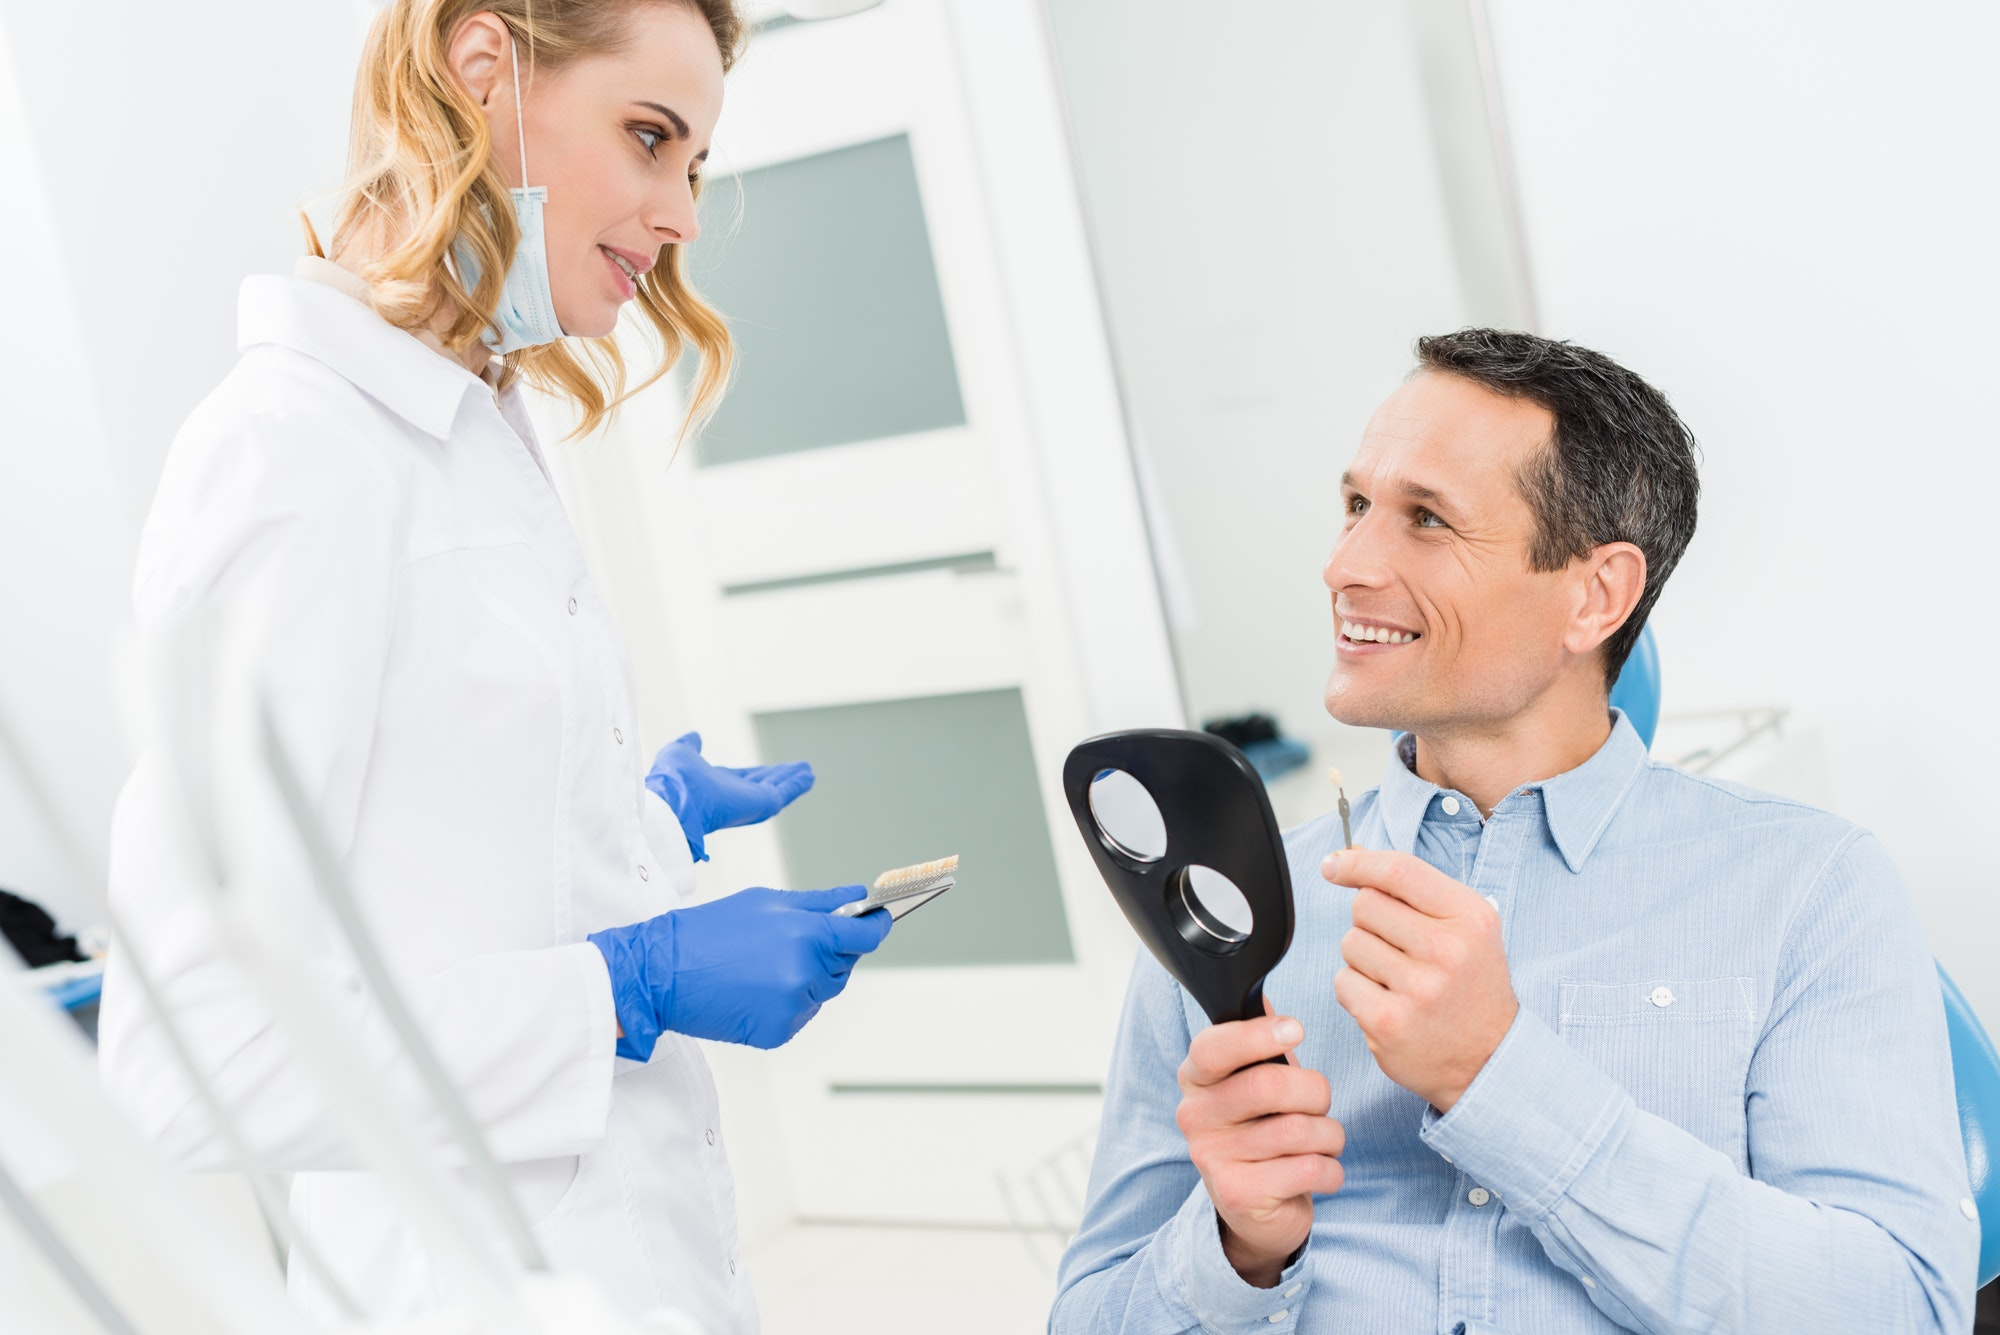 Male patient choosing tooth implant in modern dental clinic